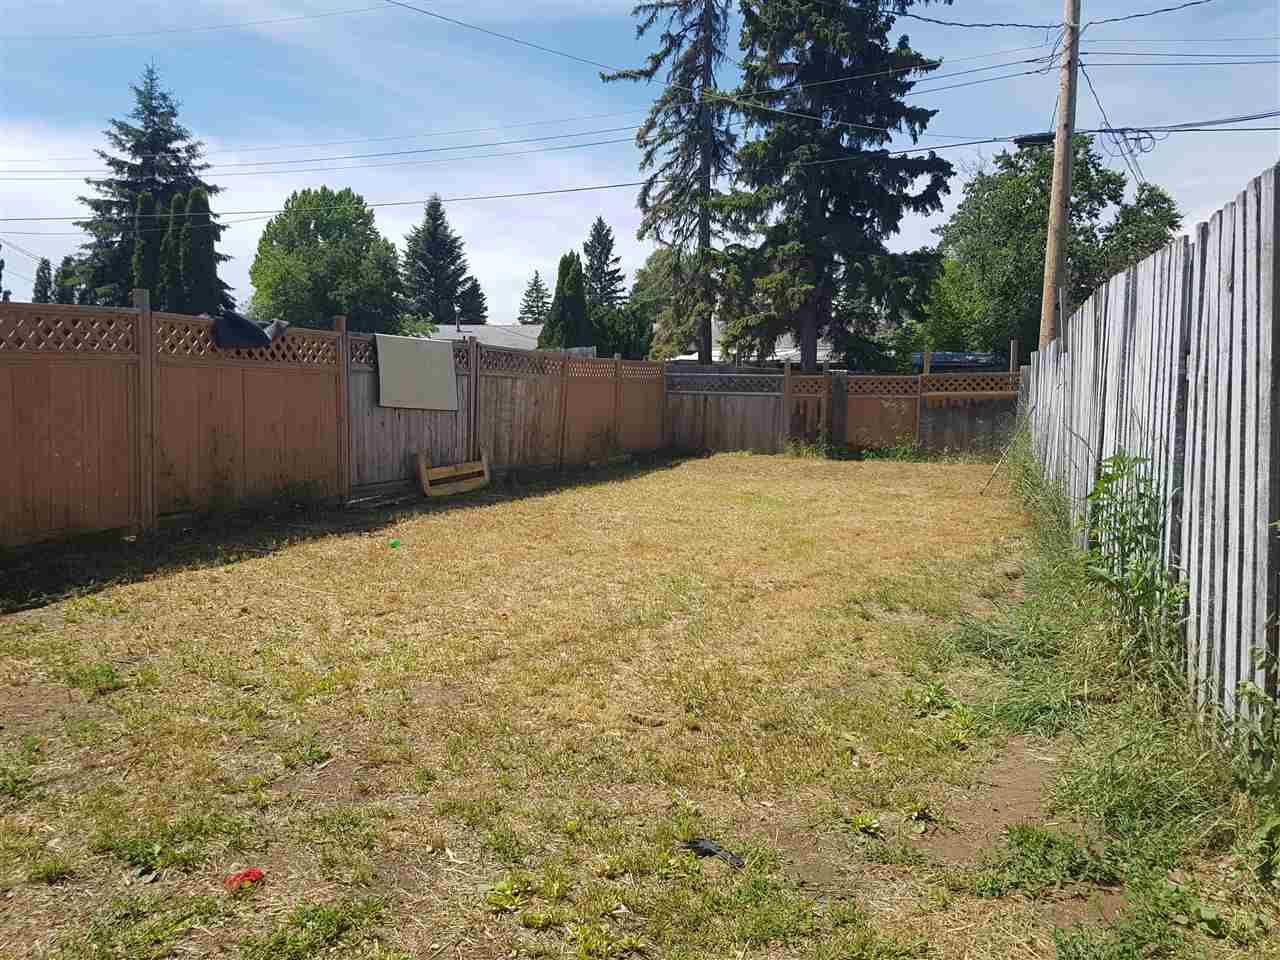 Photo 9: Photos: 2241 NORWOOD Street in Prince George: VLA 1/2 Duplex for sale (PG City Central (Zone 72))  : MLS®# R2084011